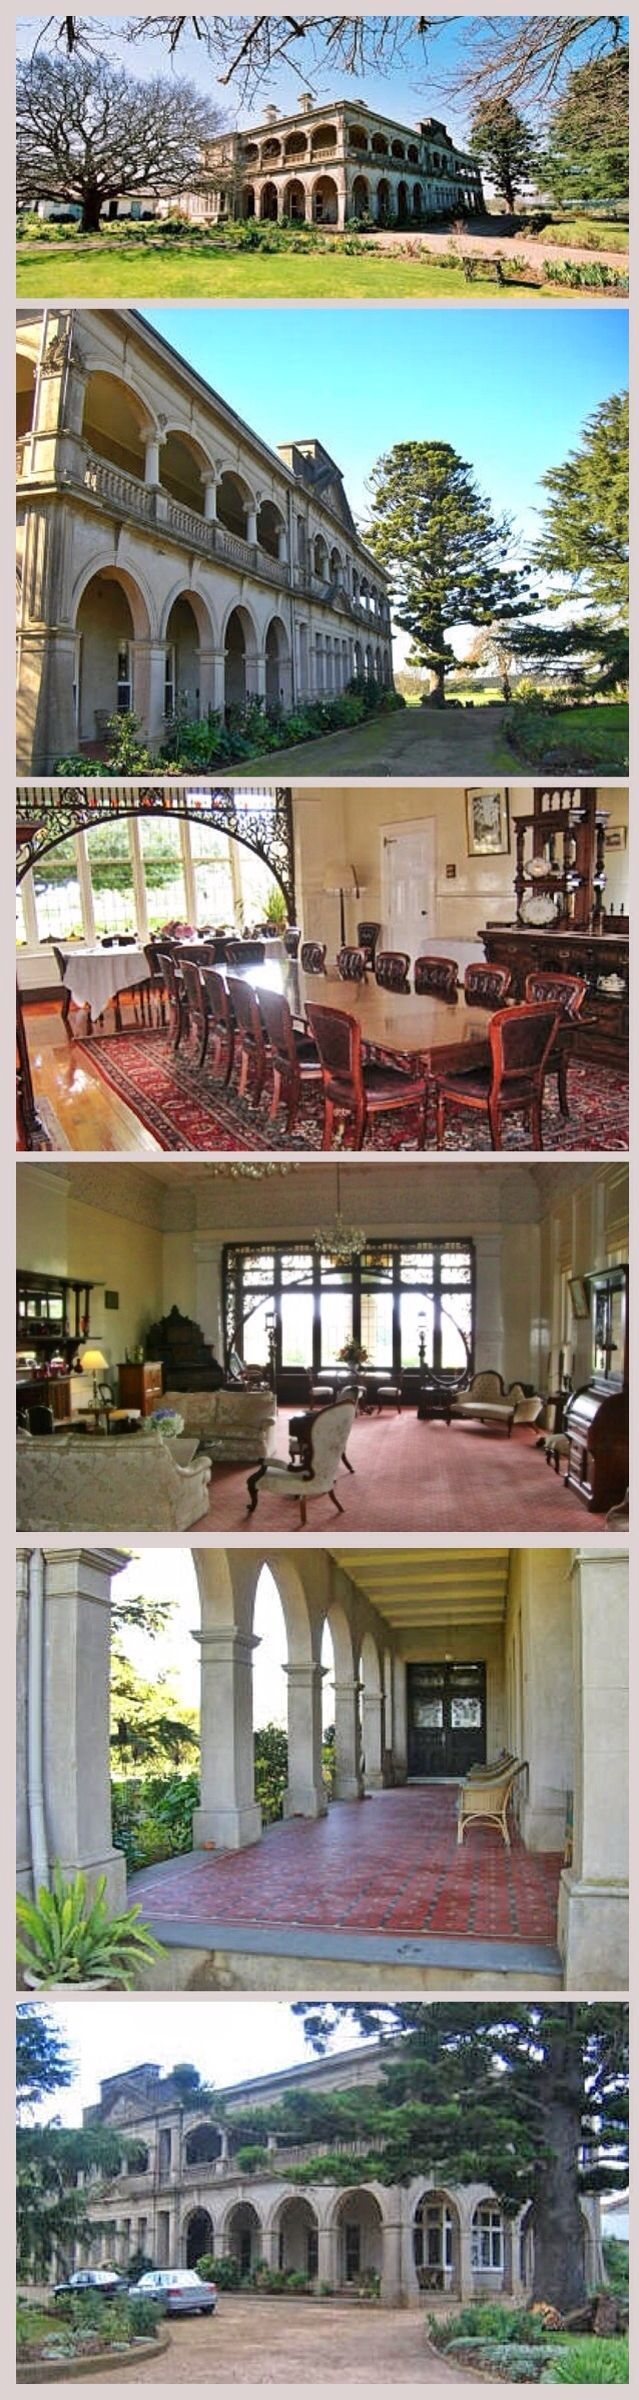 Kilmany Park, Sale (212km E of Melbourne), was settled in 1841 by William Pearson and is one of the oldest established properties in eastern Victoria. Resolute Scot, successful pastoralist, politician and mining entrepreneur, Pearson built a simple timber